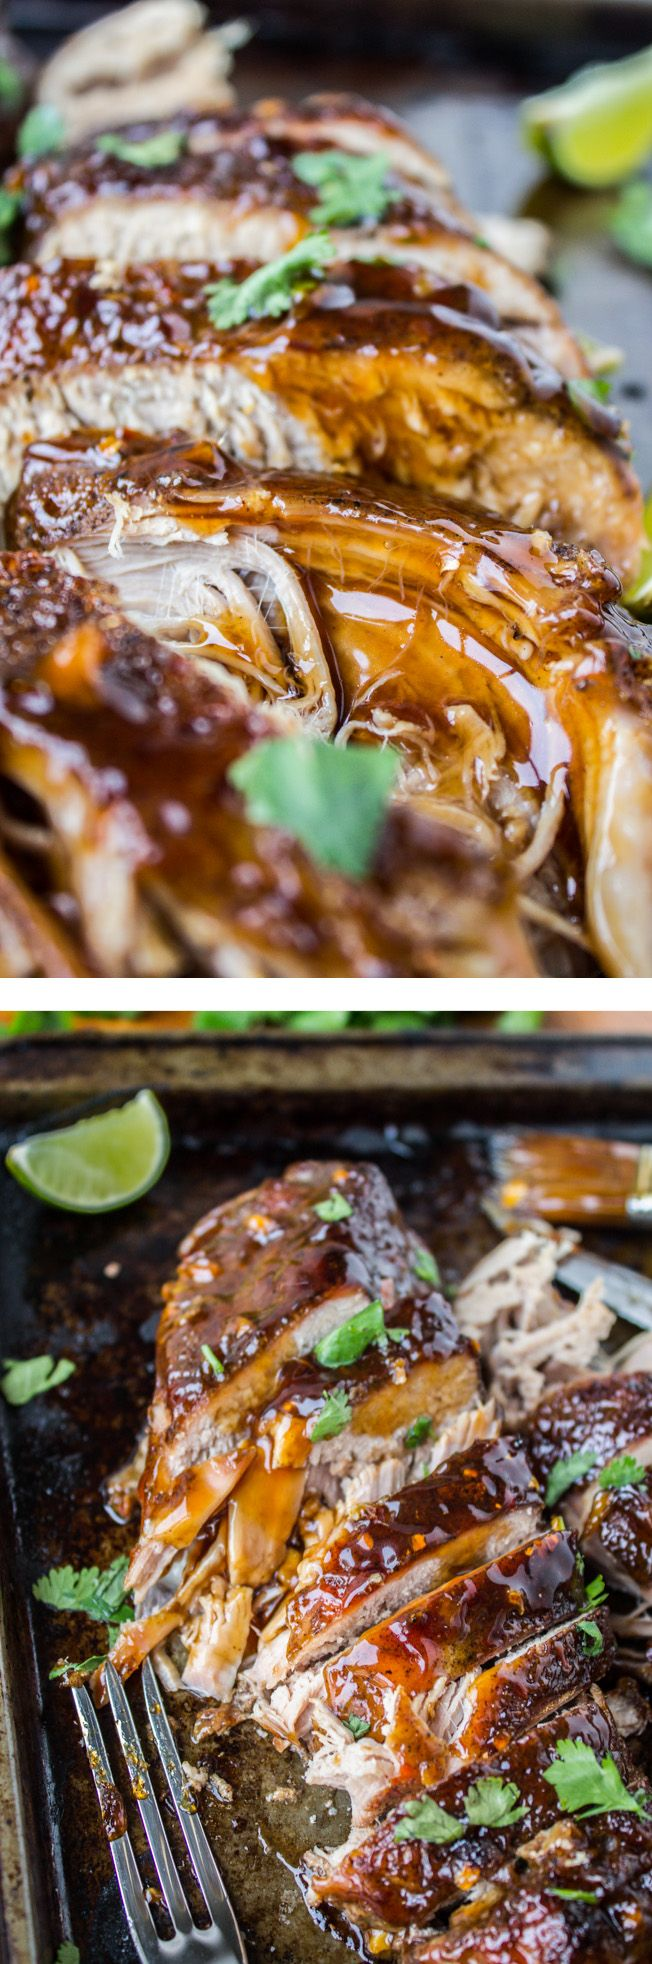 Asian Pork Tenderloin with Ginger Glaze (Slow Cooker) by thefoodcharlatan #Pork_Tenderloin #Asian #Slow_Cooker